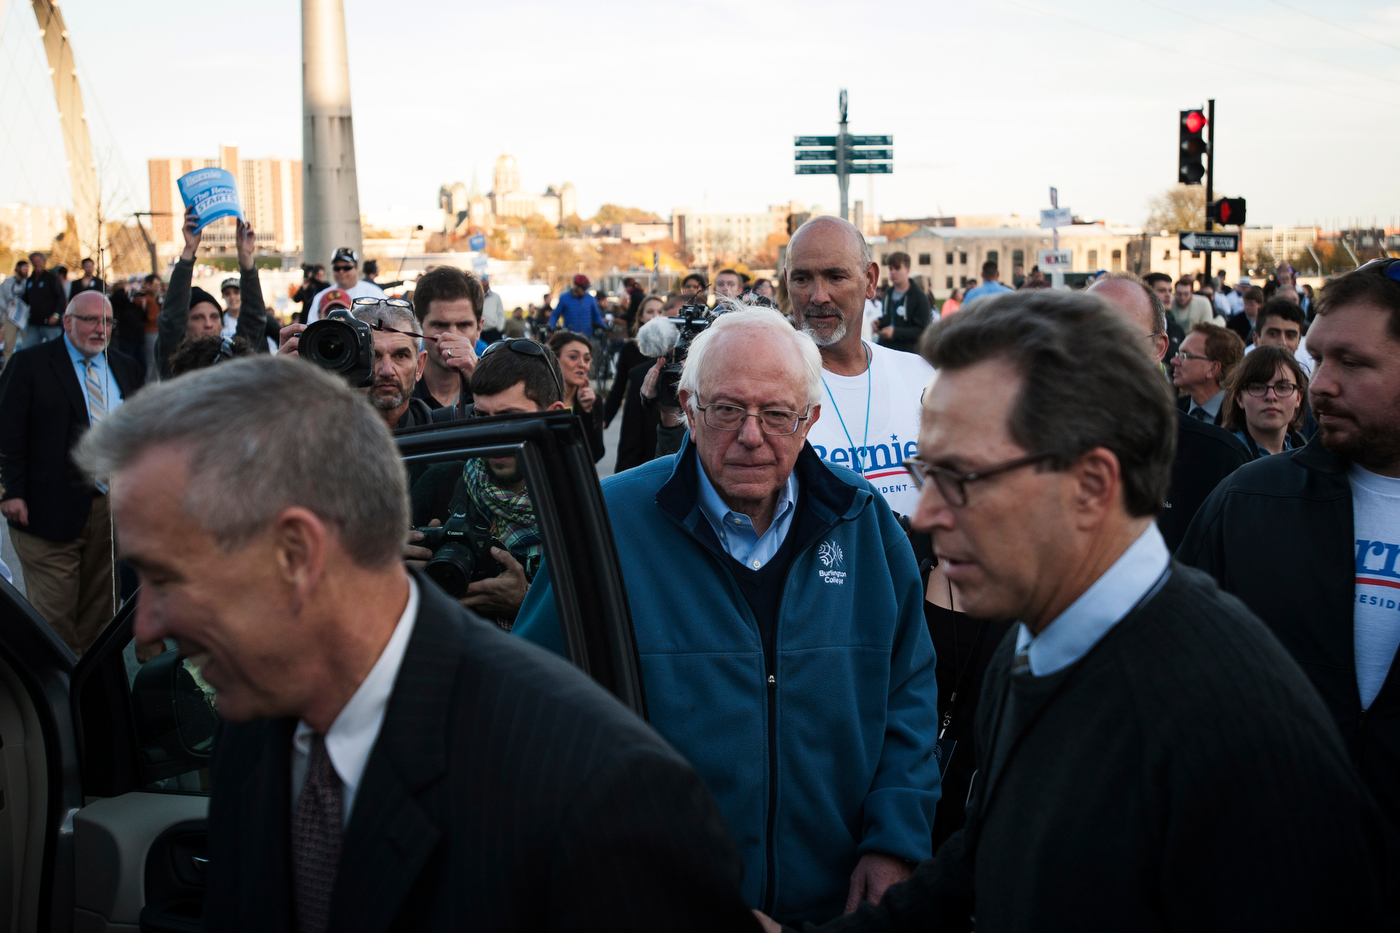 Democratic presidential candidate Sen. Bernie Sanders leaves a rally to attend the Jefferson-Jackson Dinner in Des Moines where he, Hillary Clinton, and Martin O'Malley spoke to Democratic supporters.